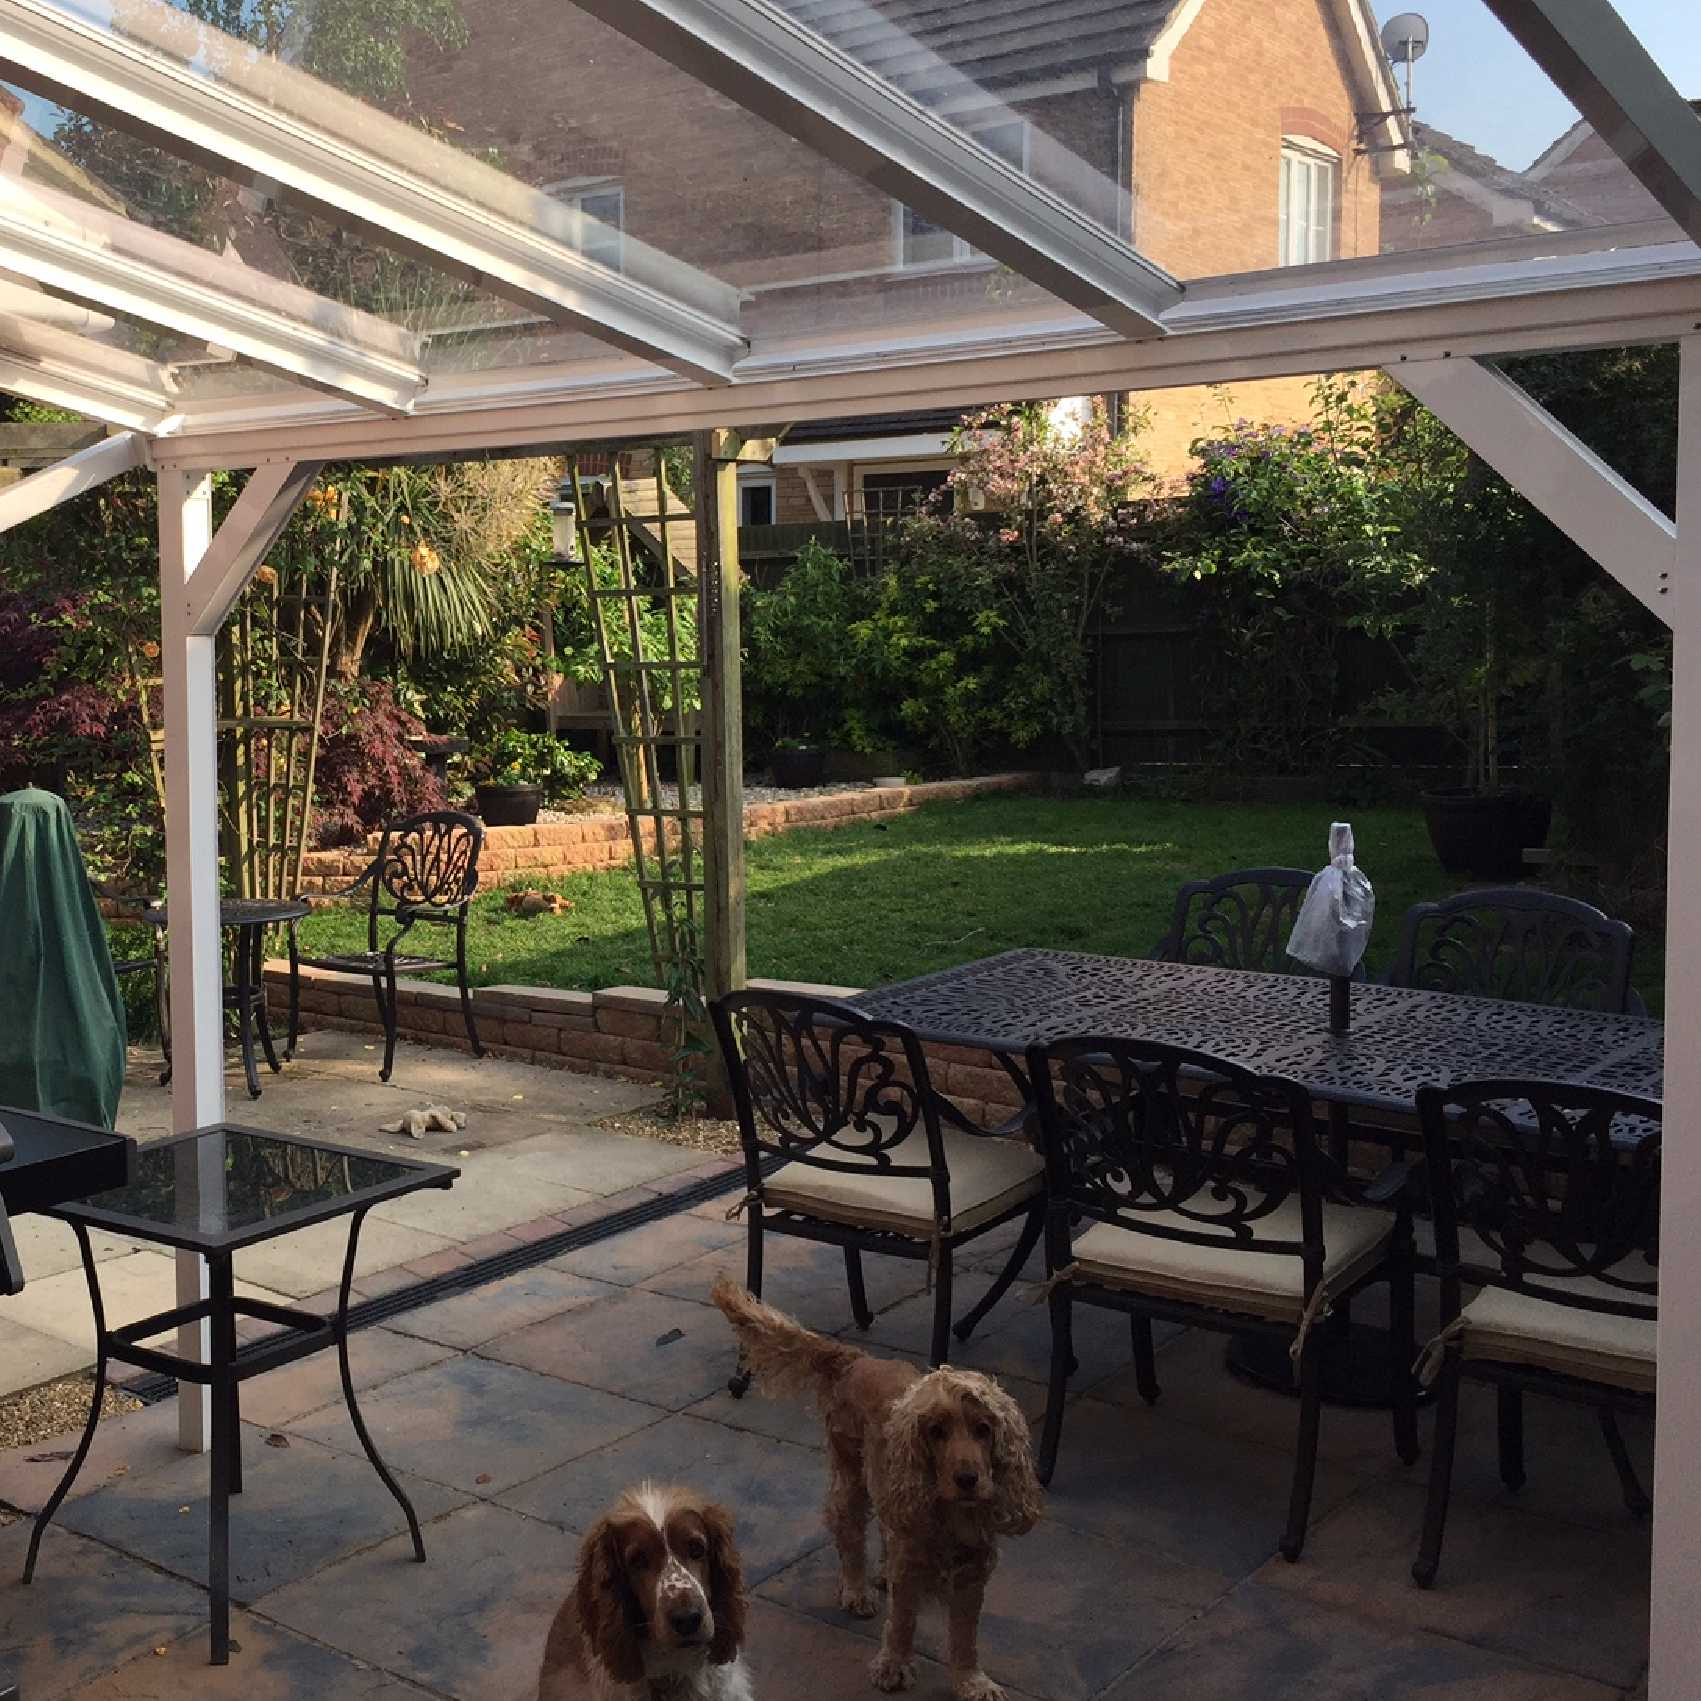 Affordable Omega Smart White Lean-To Canopy UNGLAZED for 6mm Glazing - 9.8m (W) x 2.5m (P), (5) Supporting Posts